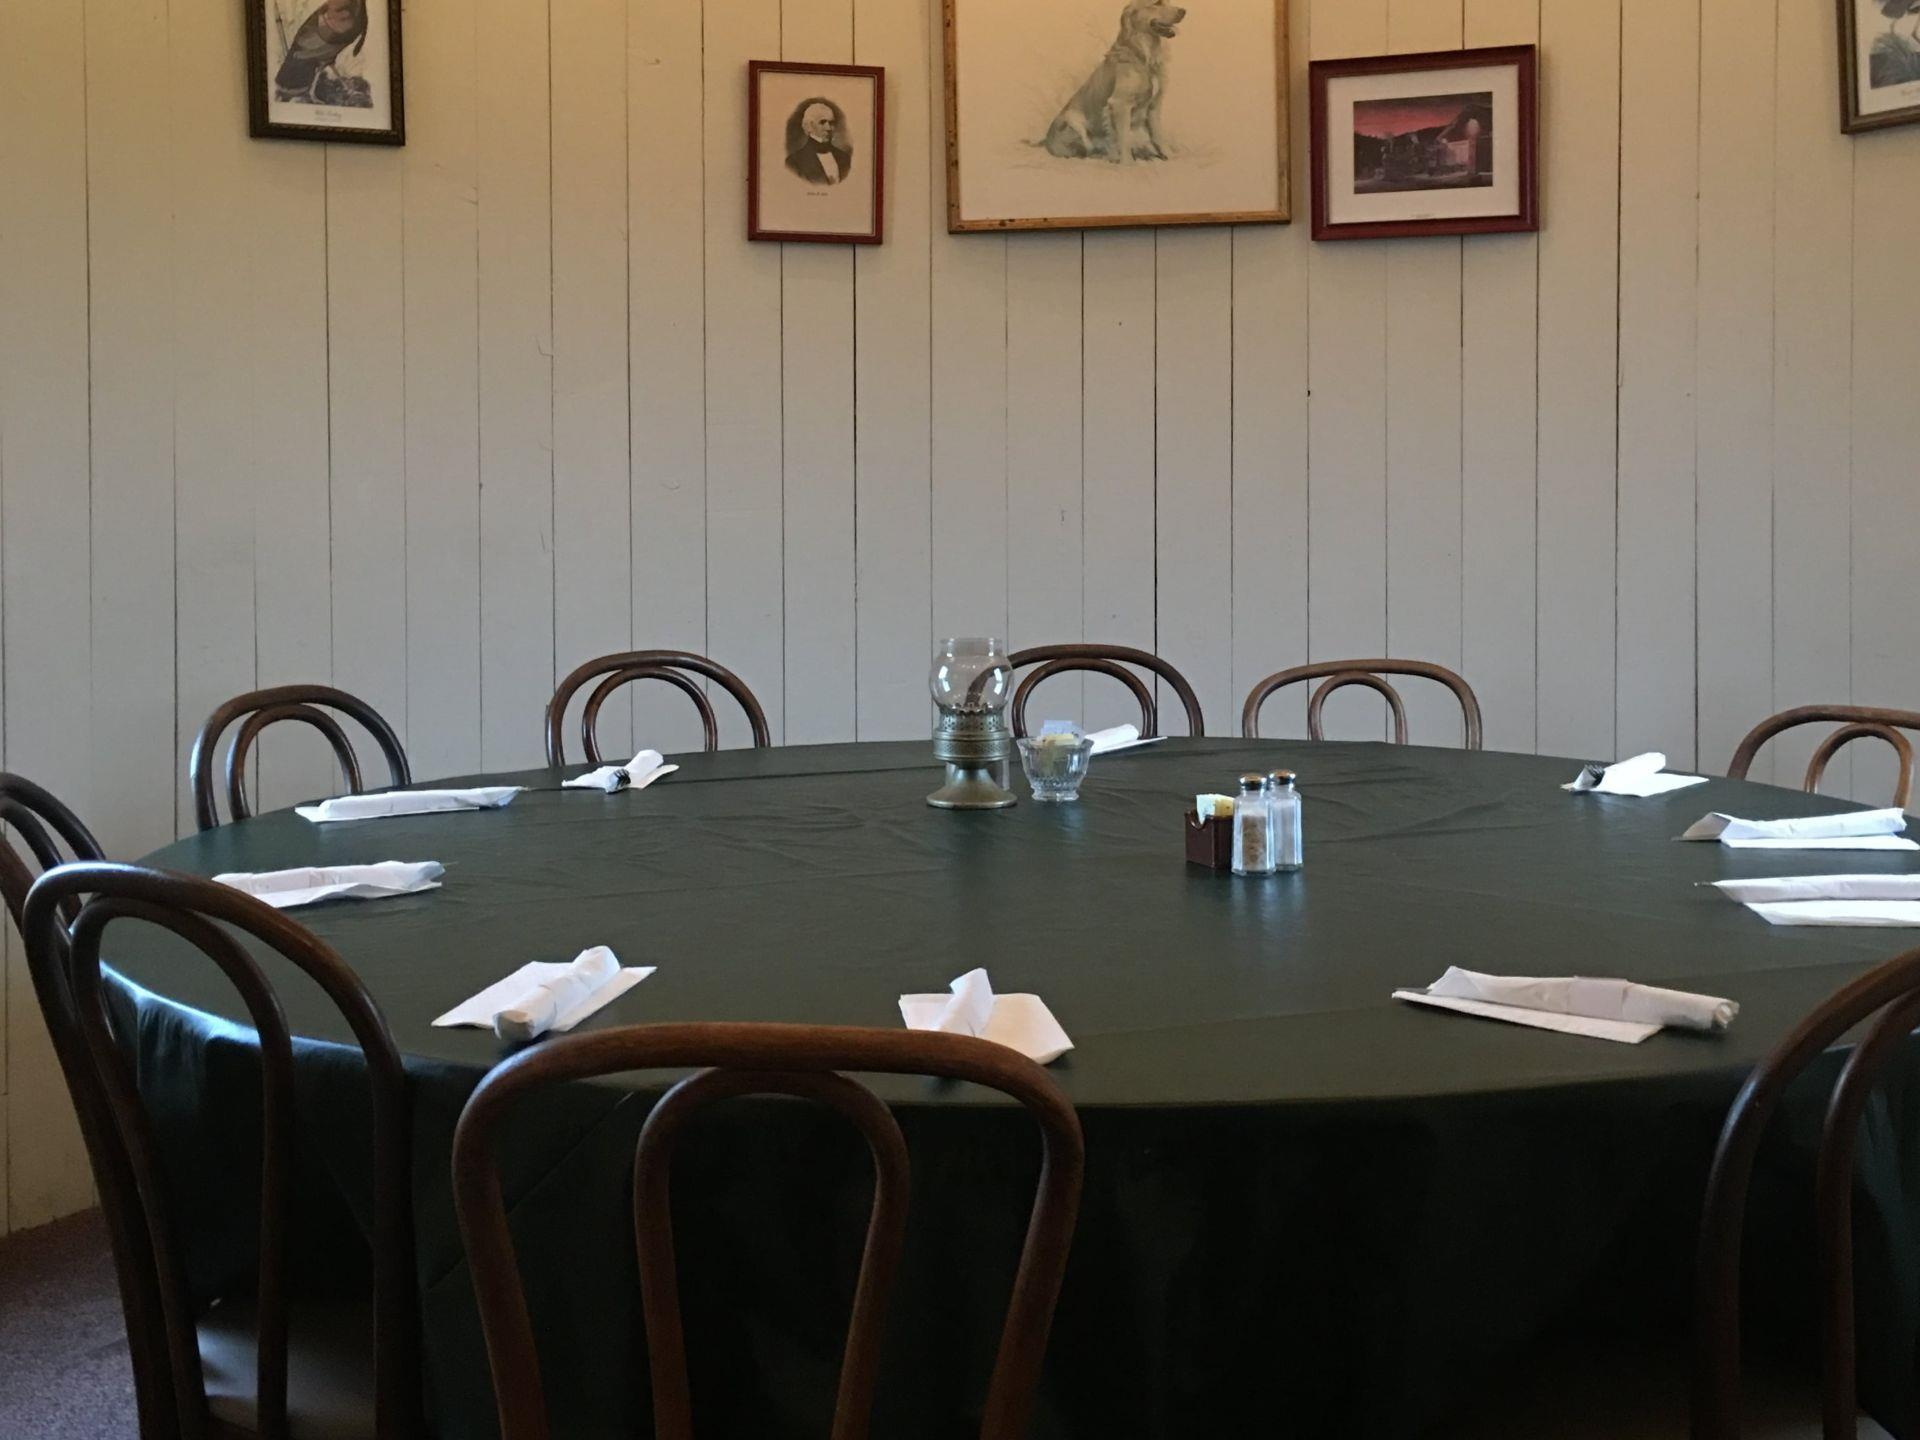 Round dining table set up with place-settings and chairs and pictures hanging on the wall